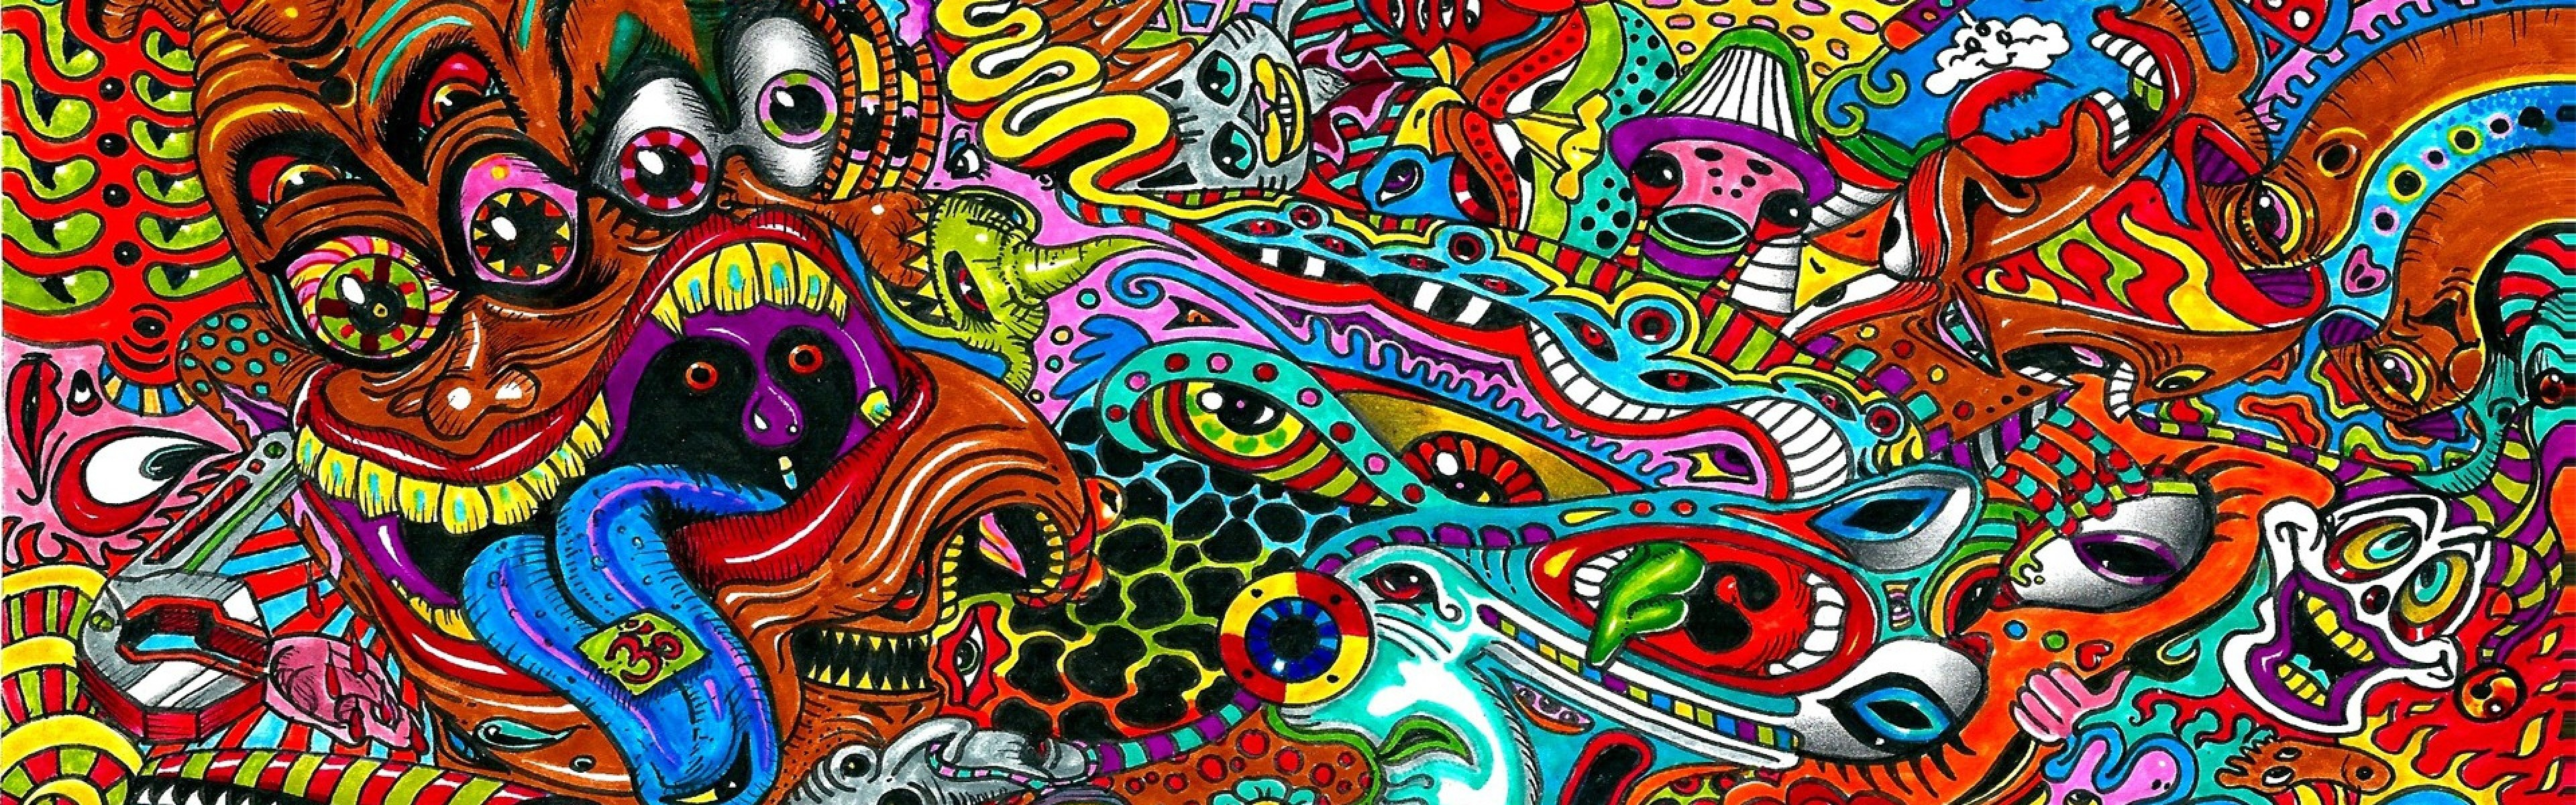 Download Wallpaper Drawing, Surreal, Colorful, Psychedelic .